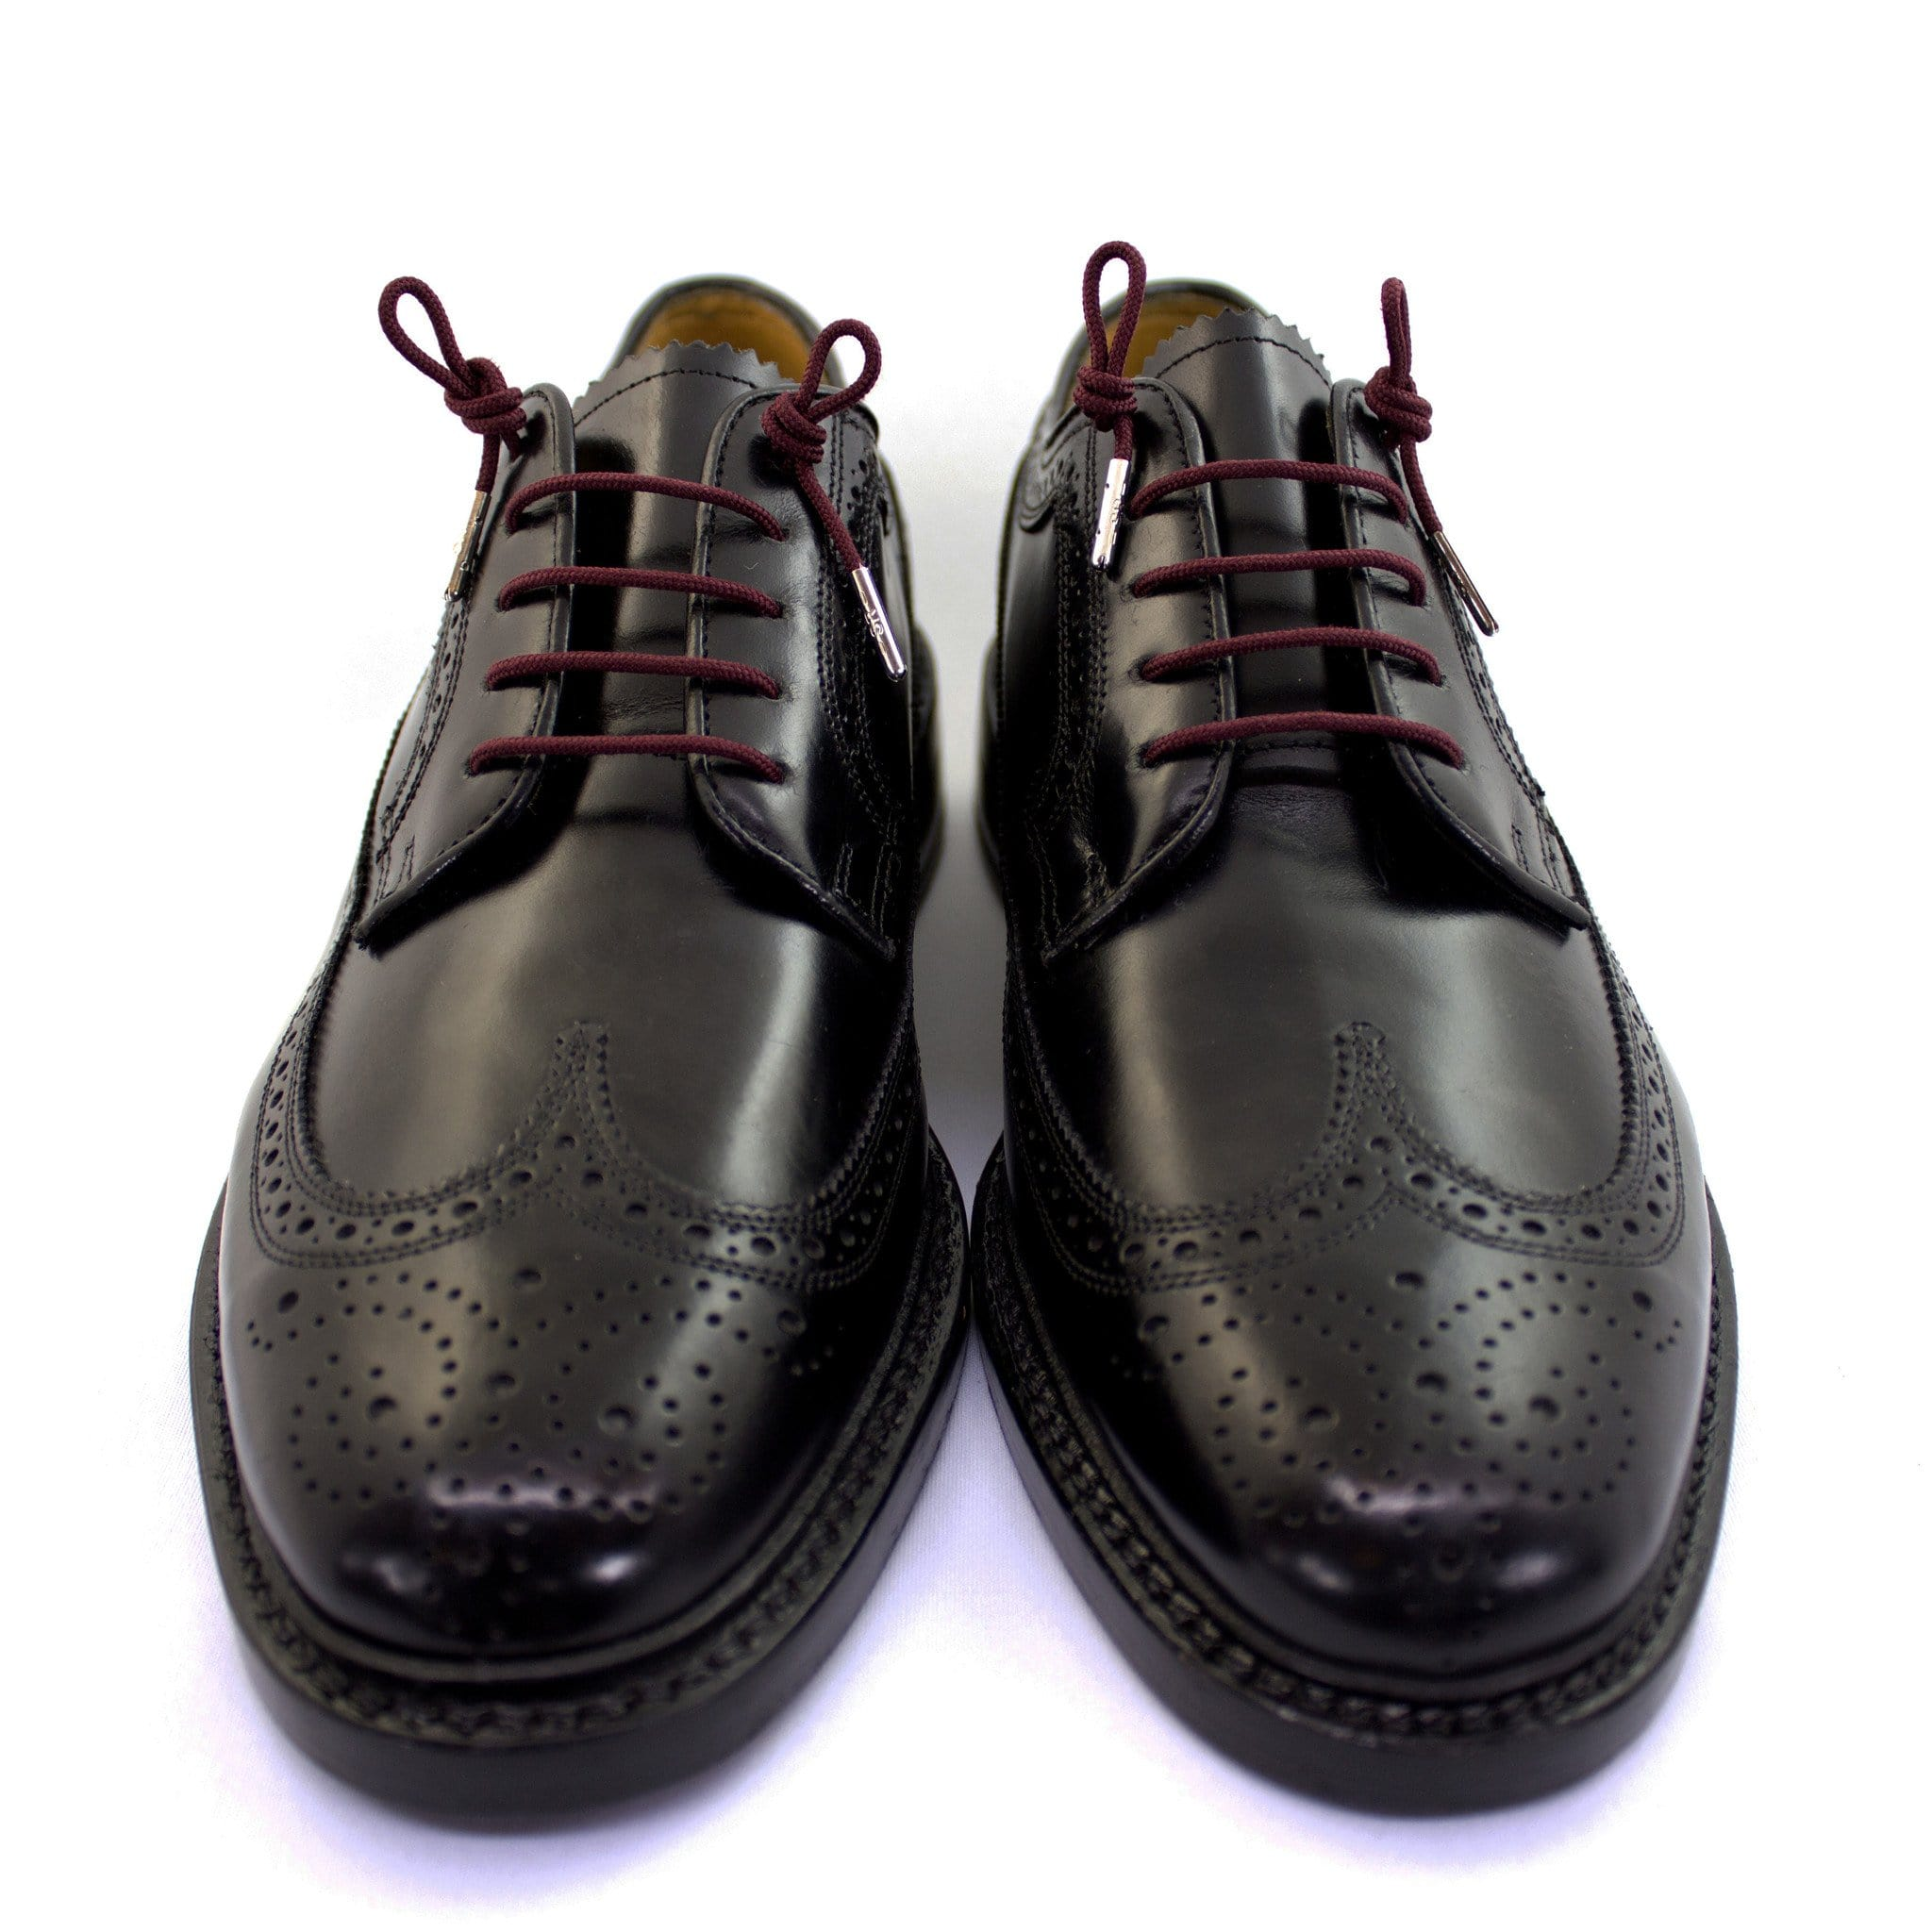 "Burgundy laces for dress shoes, Length: 27""/69cm-Stolen Riches"